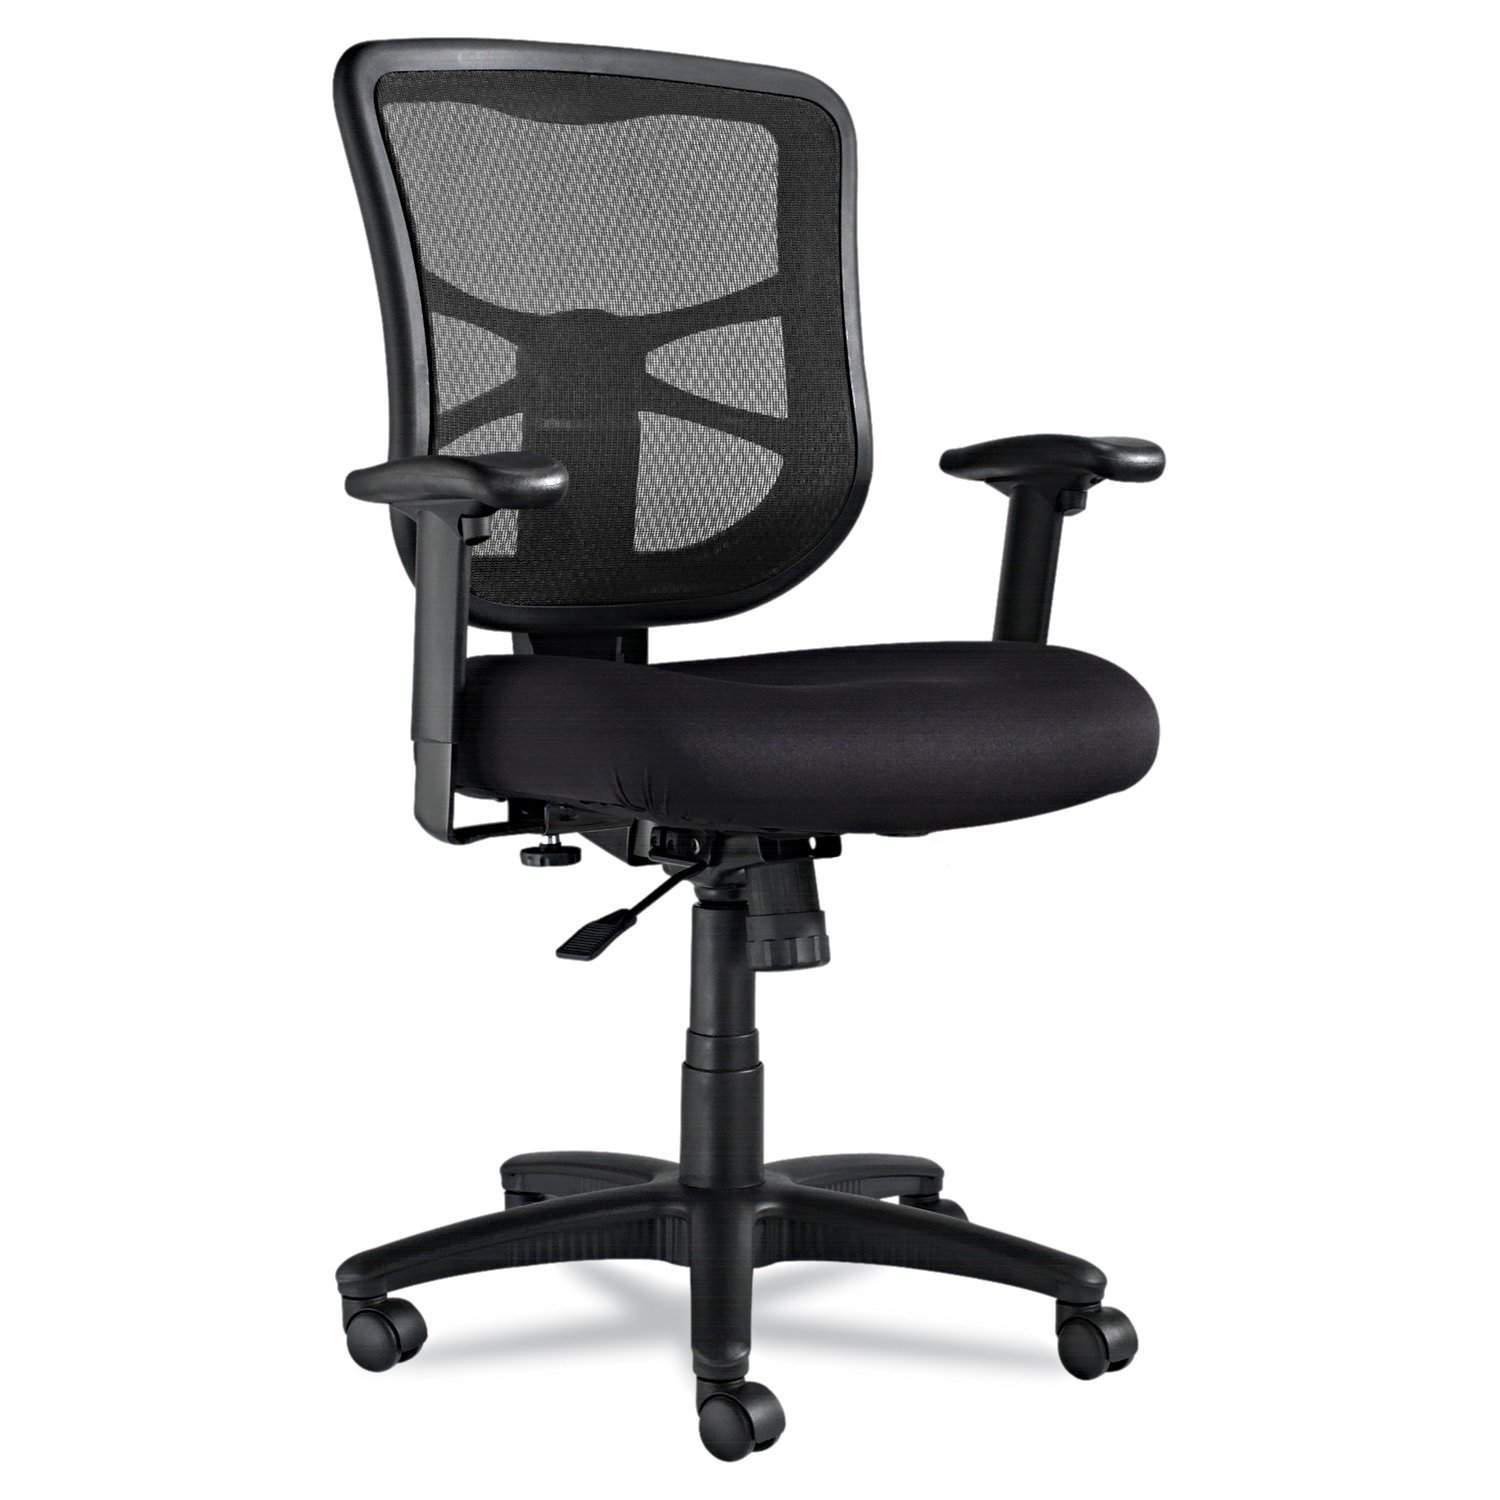 Best Ergonomic fice Chair November 2017 – Buyer s Guide and